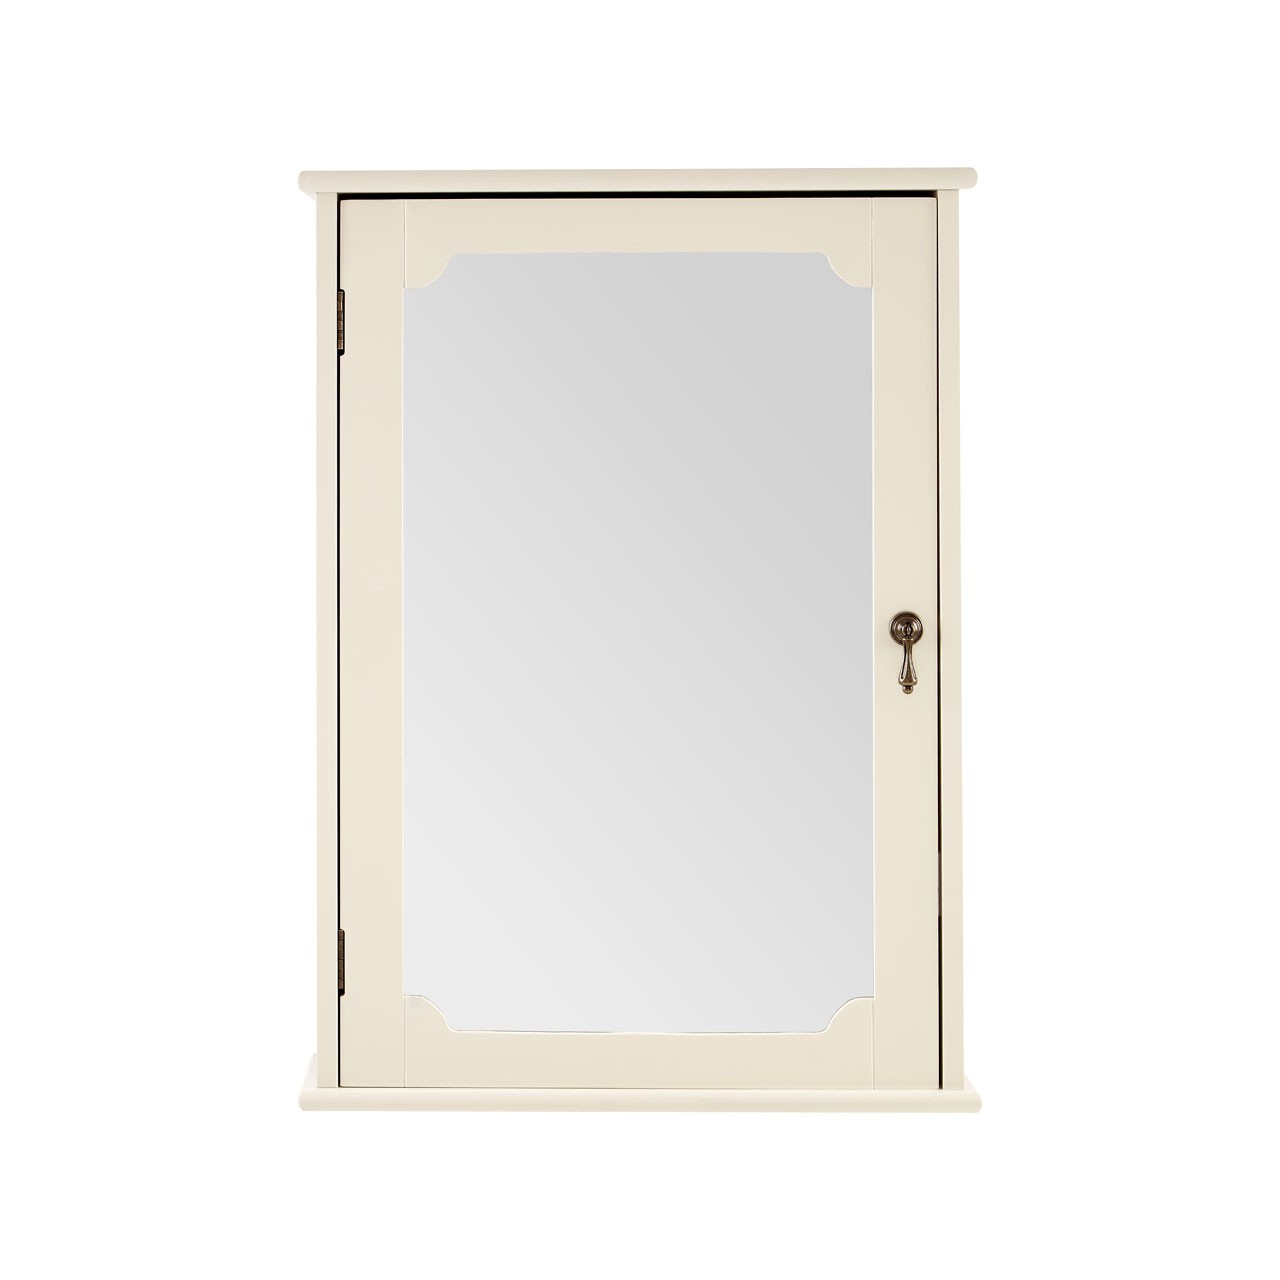 Marcella Mirror Wall Cabinet, Ivory